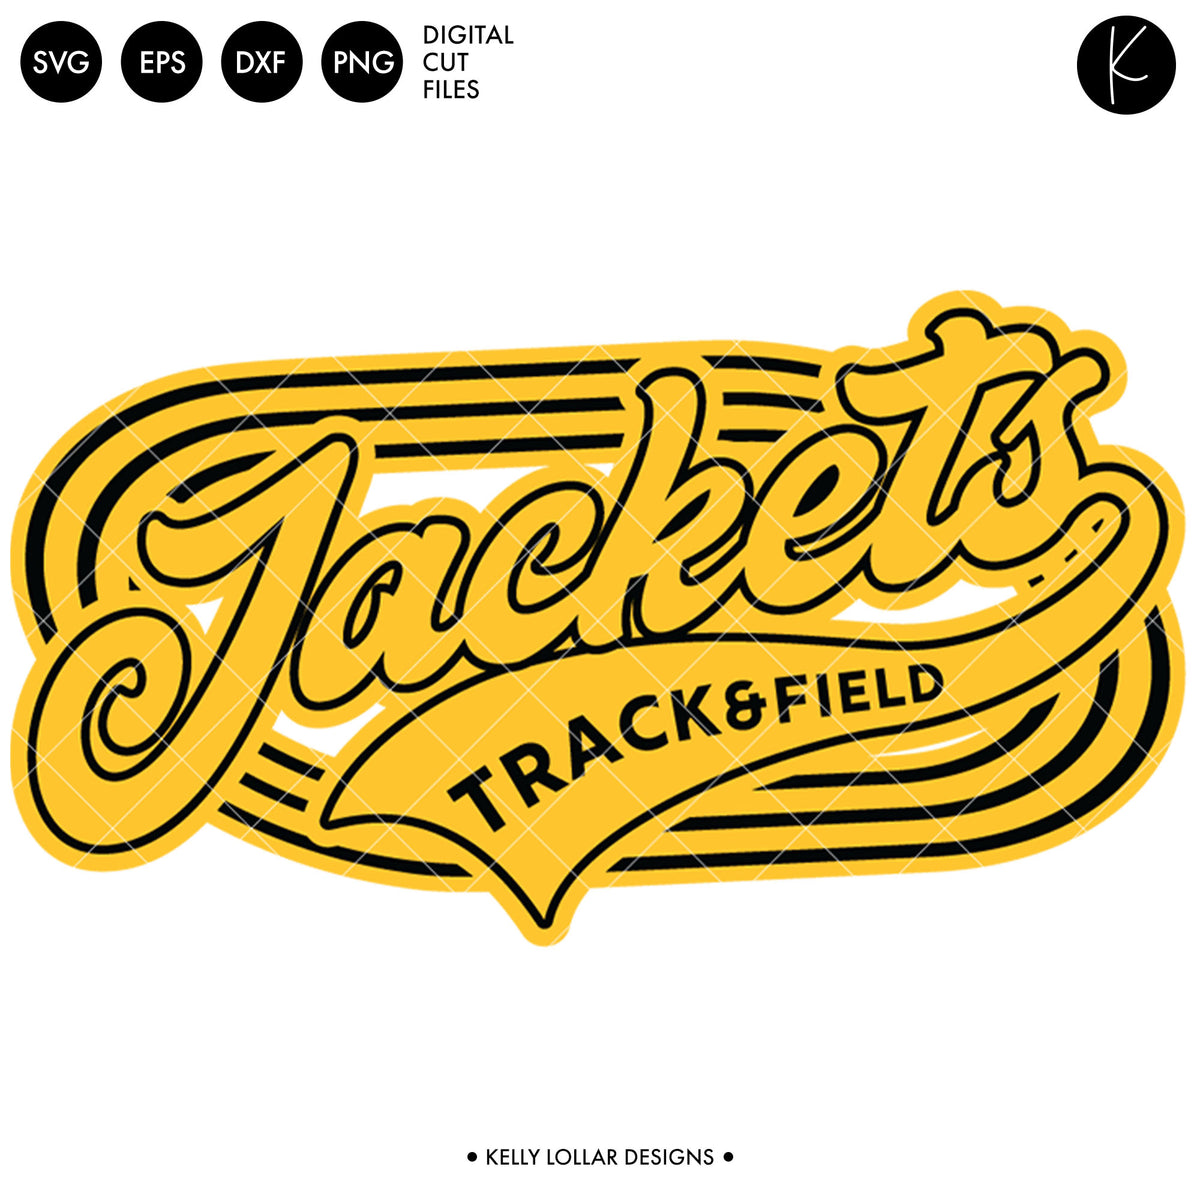 Jackets Track & Field Bundle | SVG DXF EPS PNG Cut Files